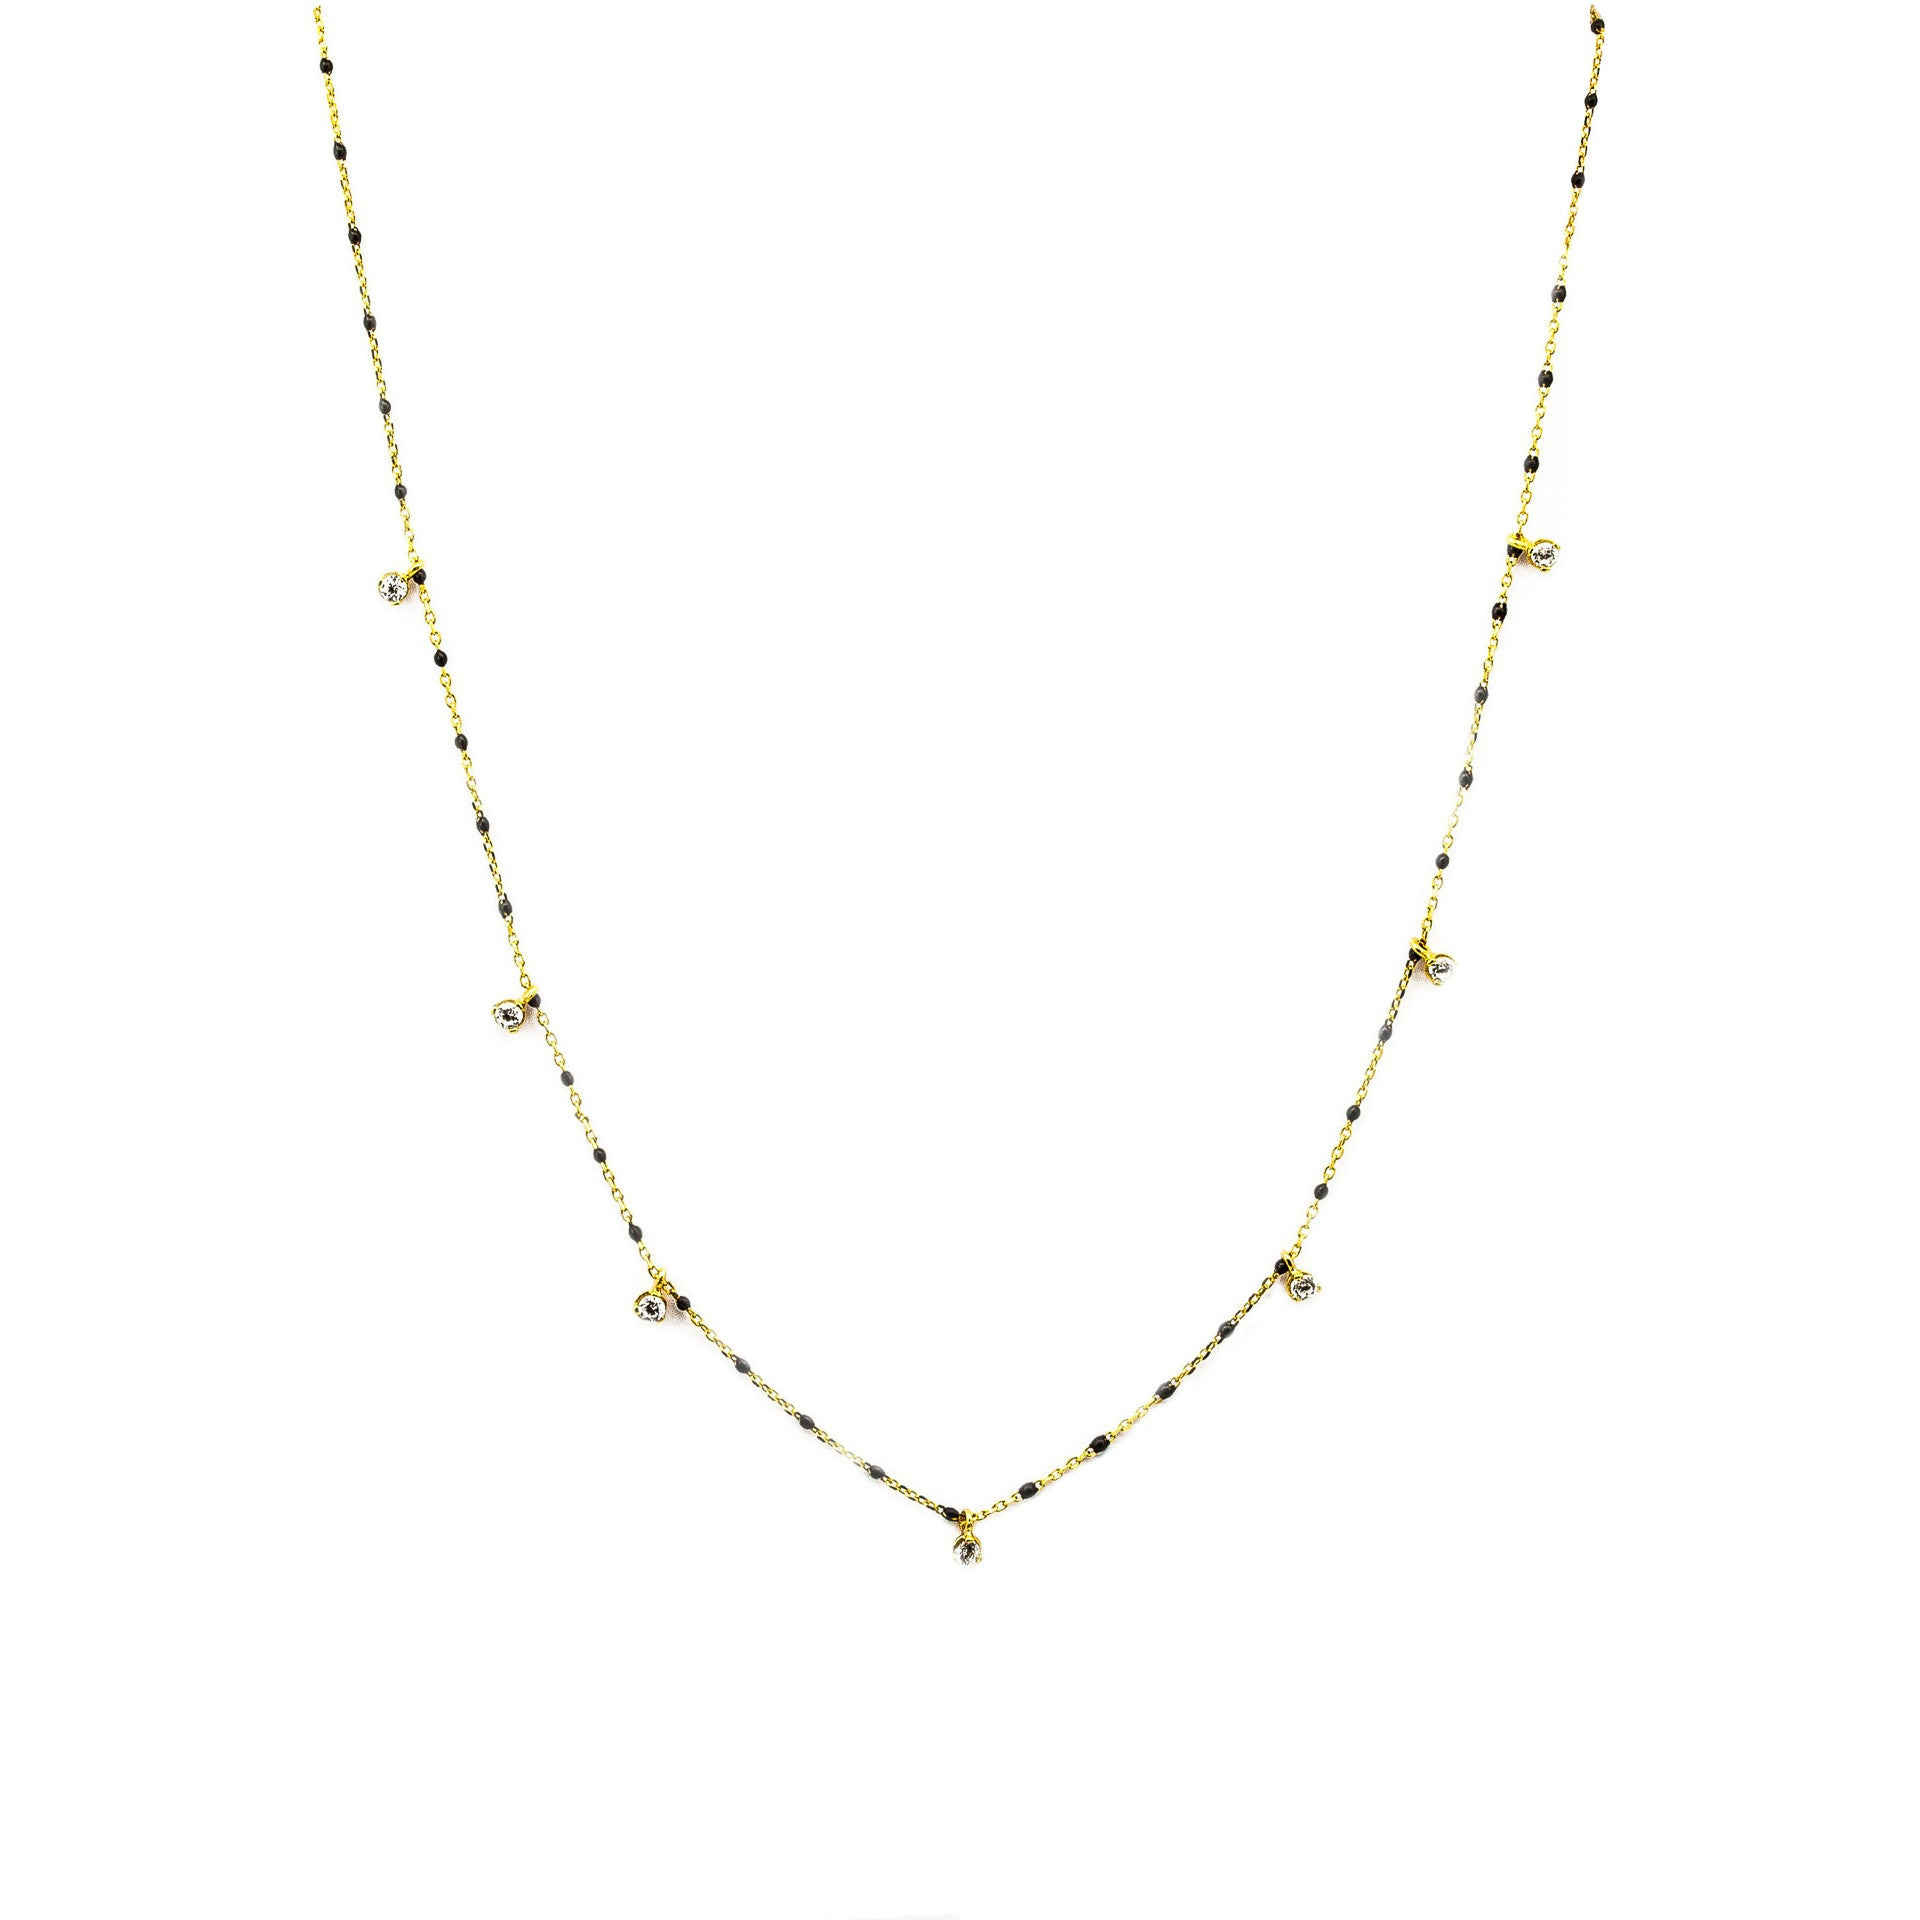 GOLD VERMEIL ENAMEL WITH STATIONED CHARM NECKLACE (BLACK)